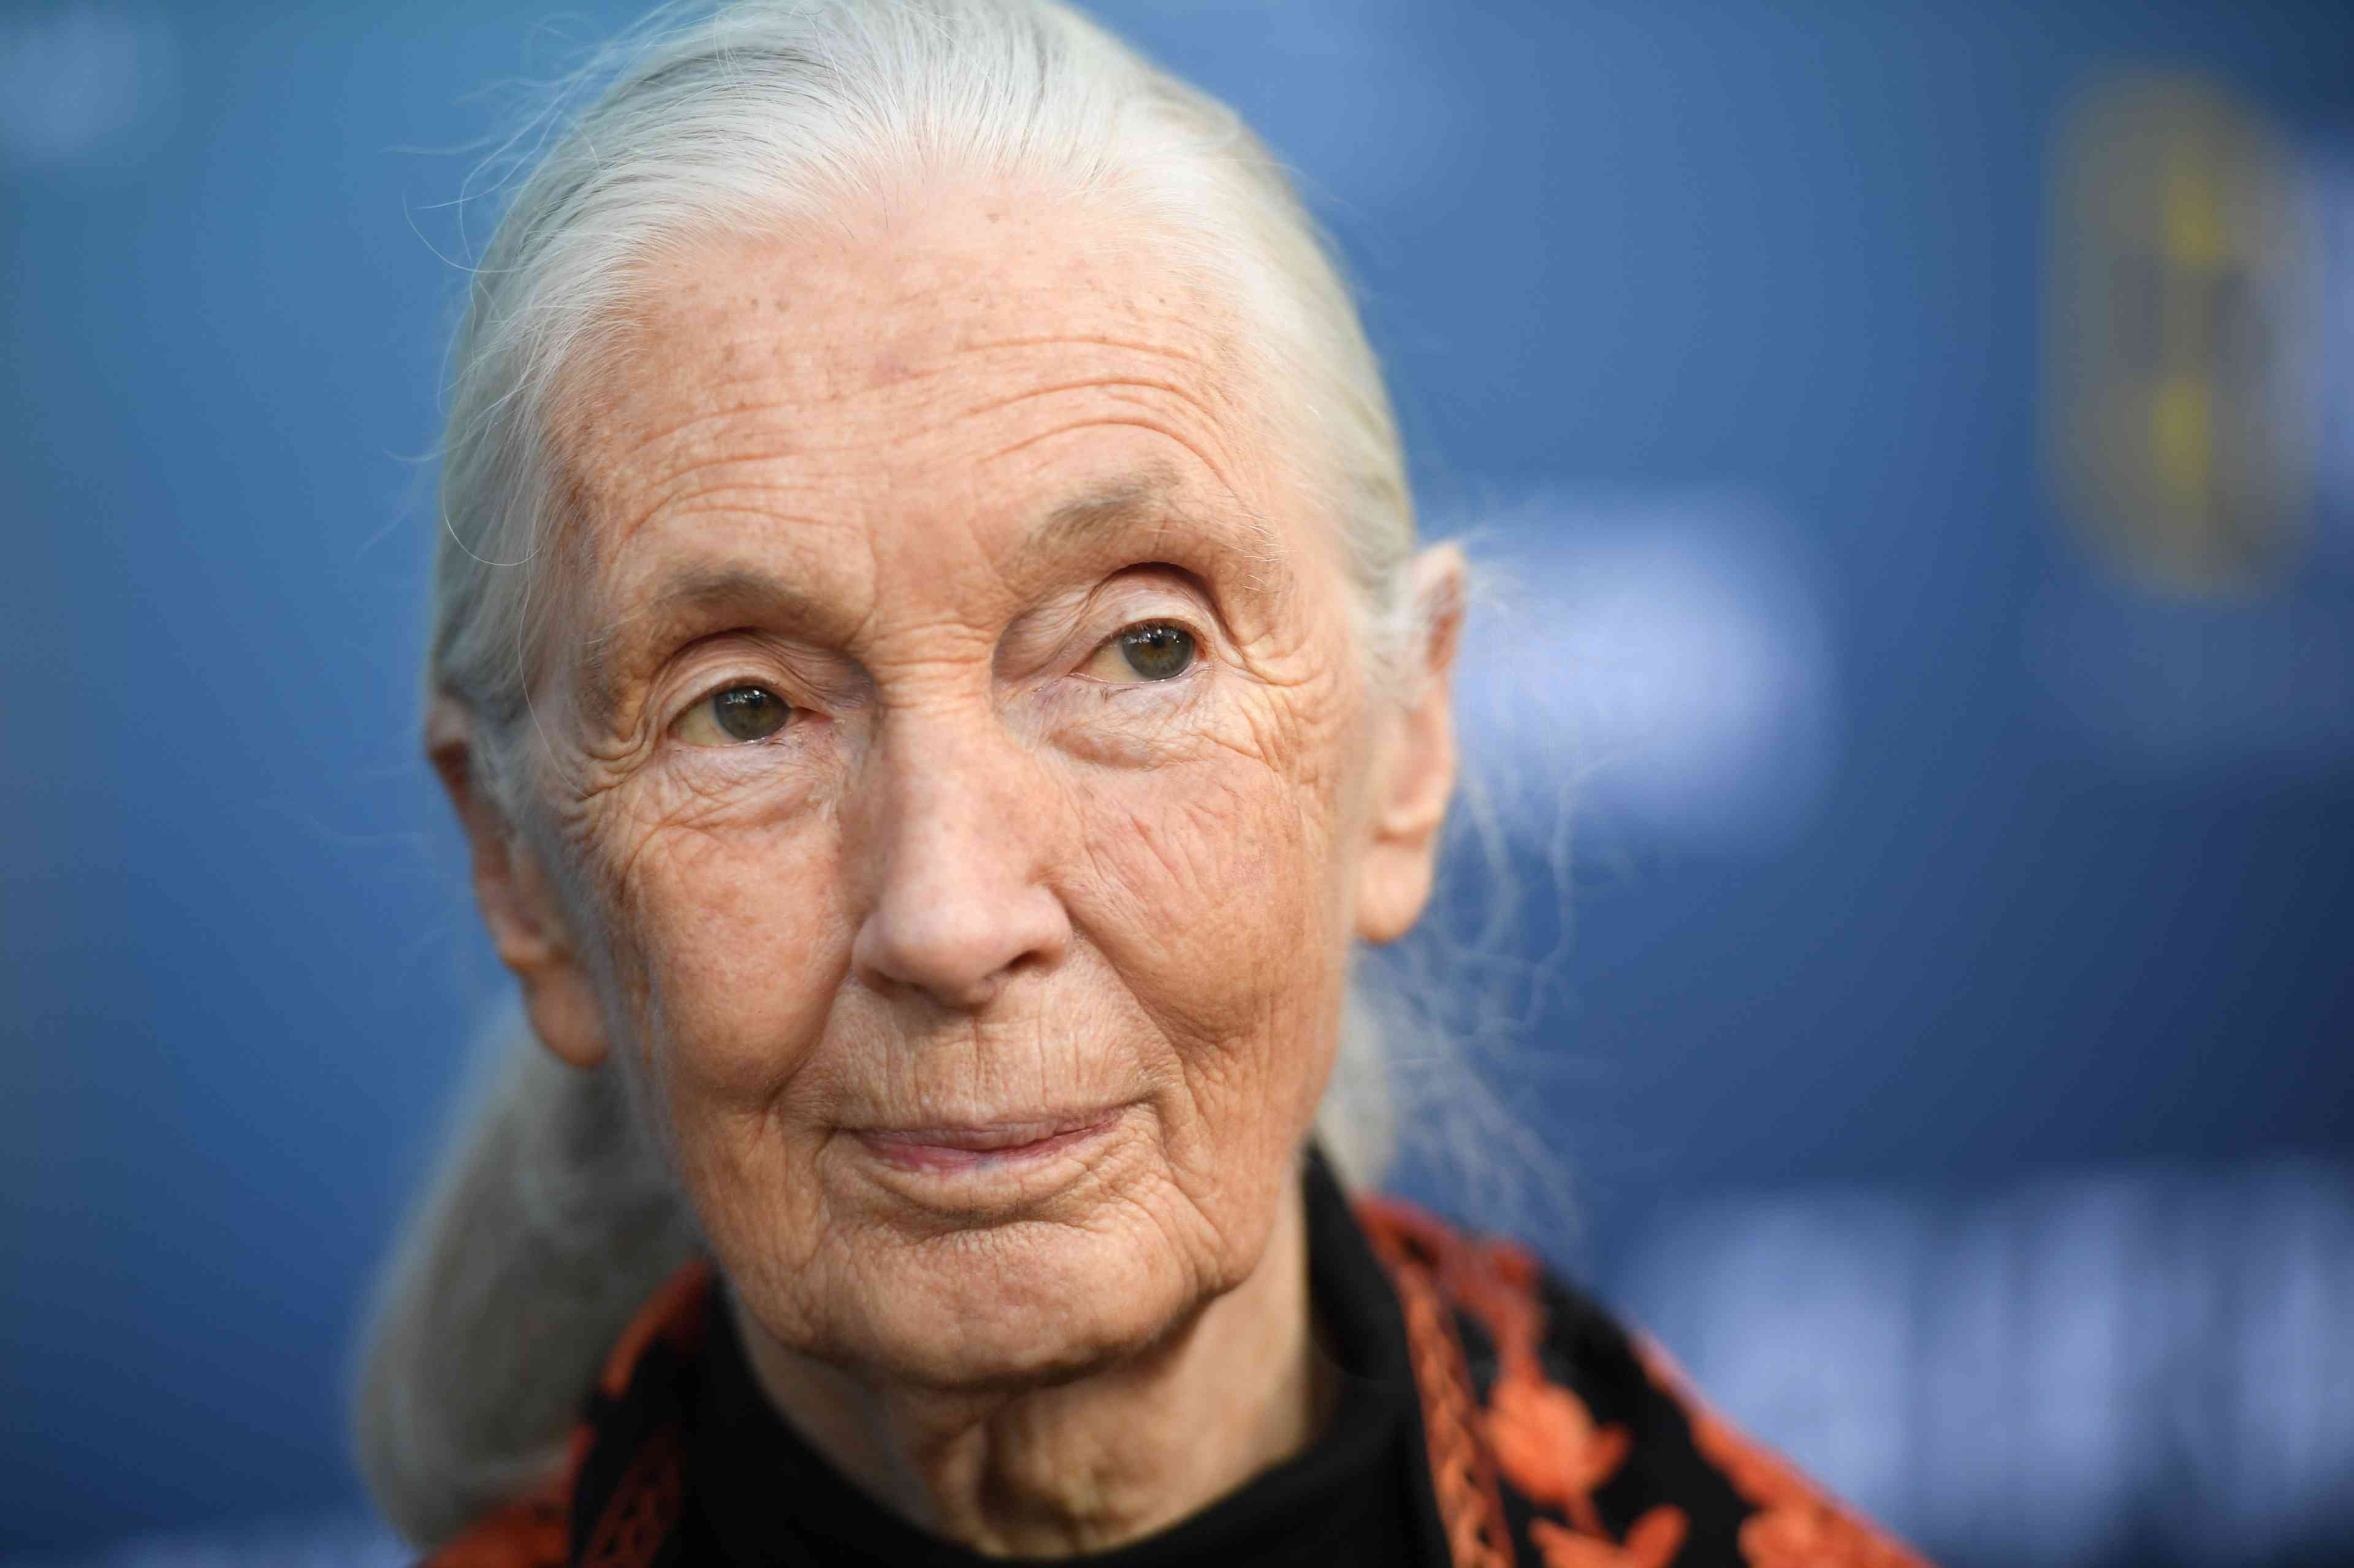 L'éthologue britannique Jane Goodall, à Los Angeles, le 10 juillet 2019.